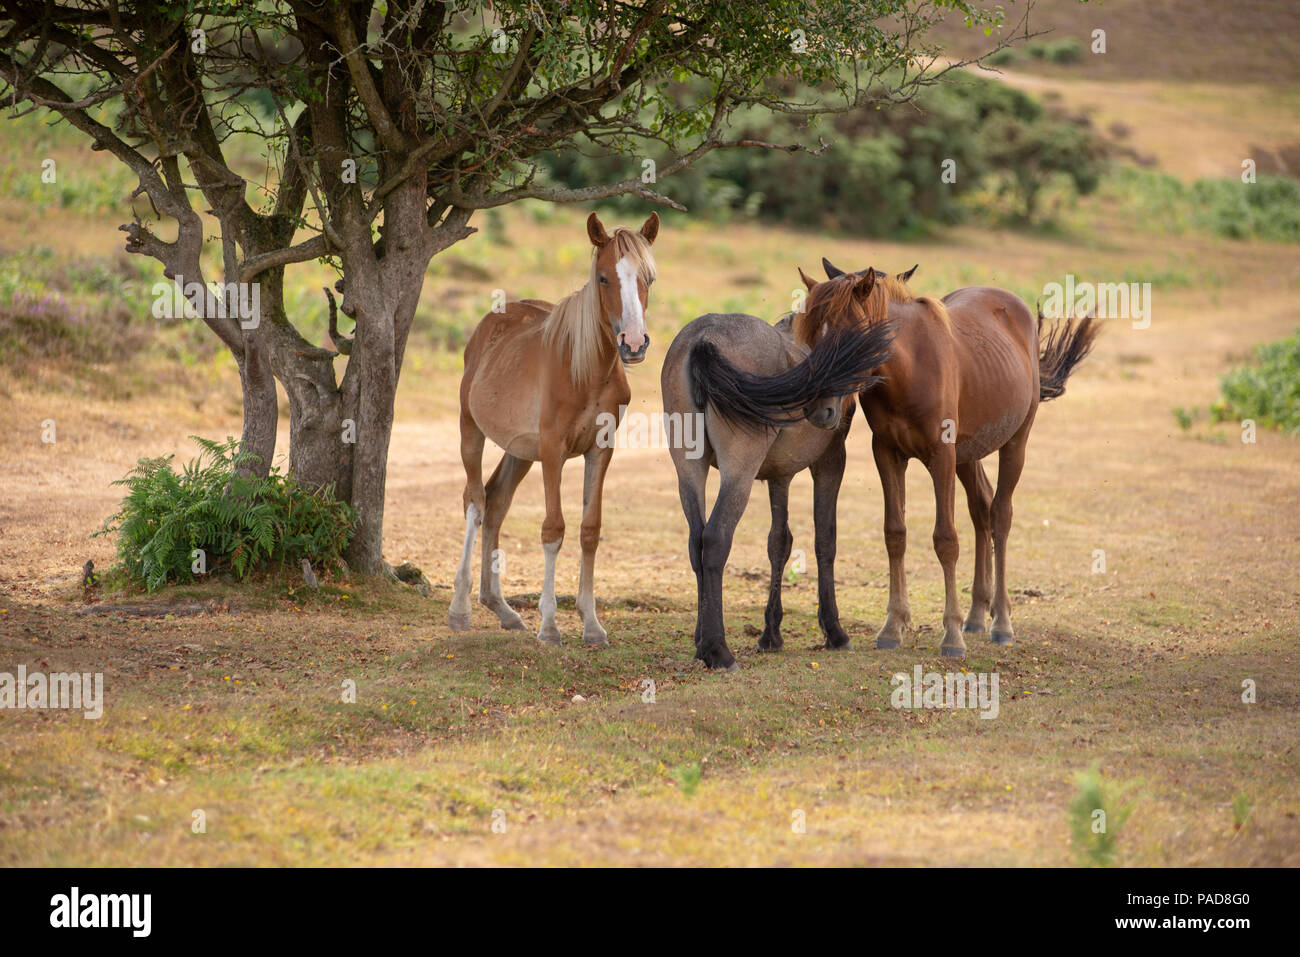 Deadman Bottom, New Forest, Hampshire, UK, 22nd July 2018. Finding some cool, with a little help from a friend. Young New Forest ponies shelter from the sun and the heat in the shade of a tree. The heatwave looks set to continue into another week. Credit: Paul Biggins/Alamy Live News Stock Photo